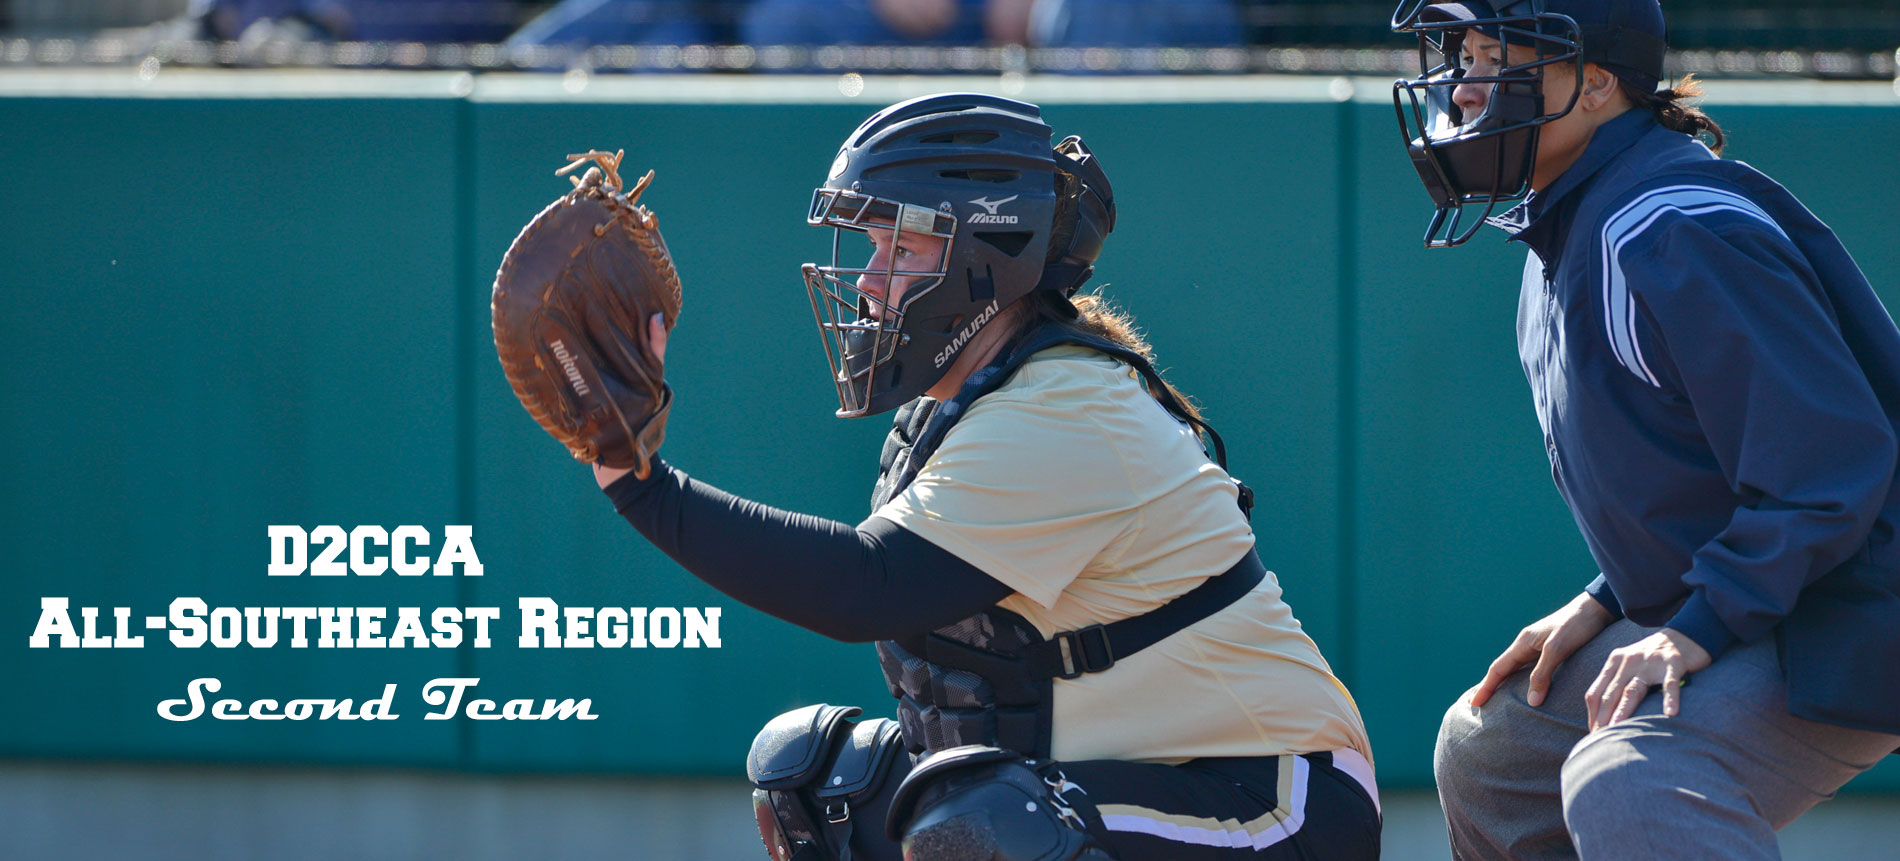 Niles Earns D2CCA Softball All-Southeast Region Second Team Honors